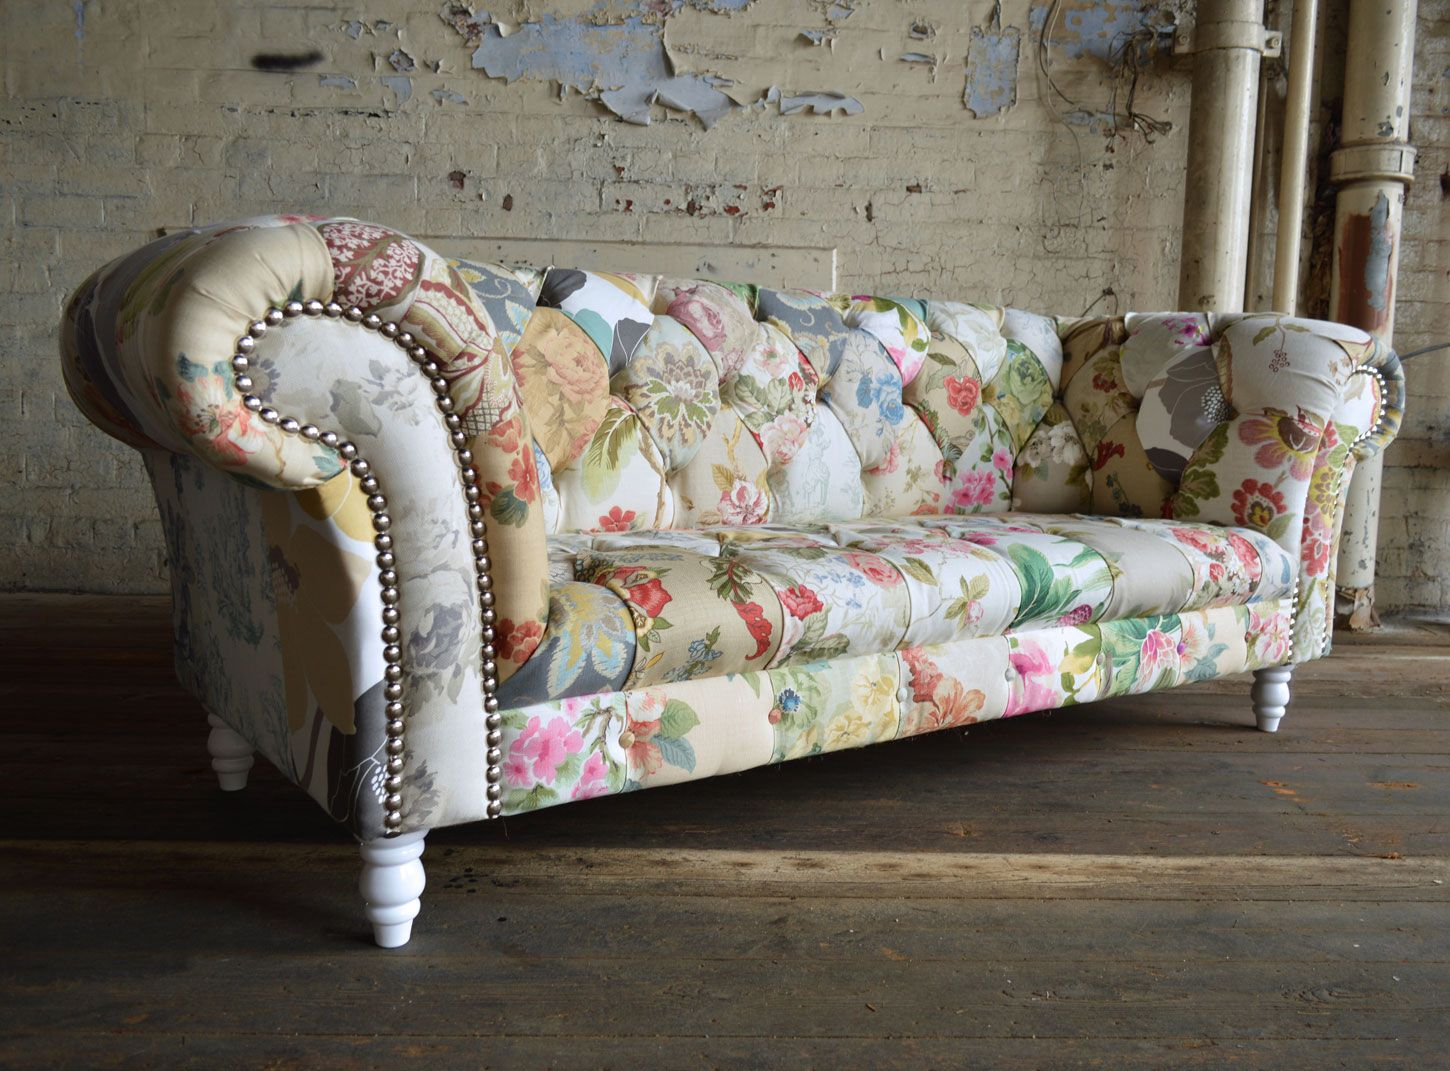 Shabby Chic 3 Seater Patchwork Chesterfield Sofa Shabby Chic Sofa Vintage Modern Sofa Shabby Chic Furniture